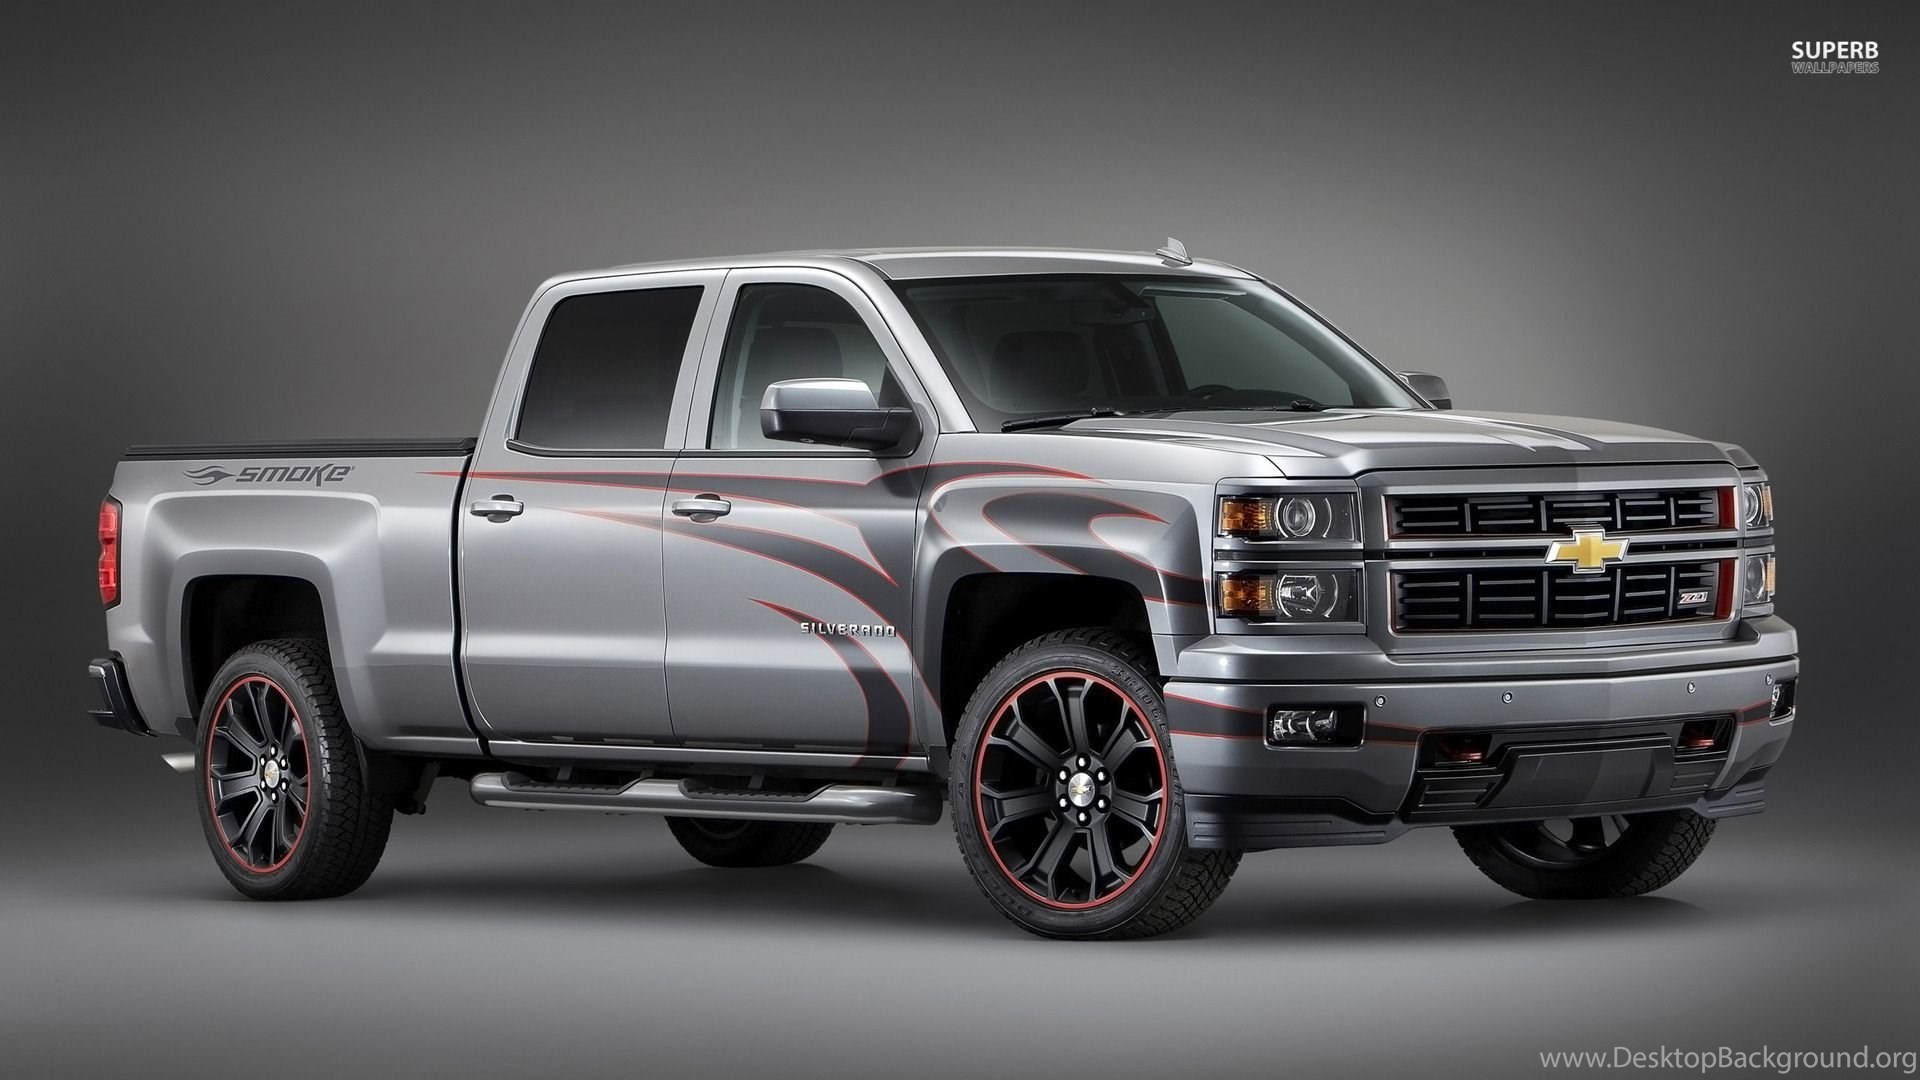 Lifted White Chevy Trucks Wallpapers Au Mf Desktop Background Silverado Popular